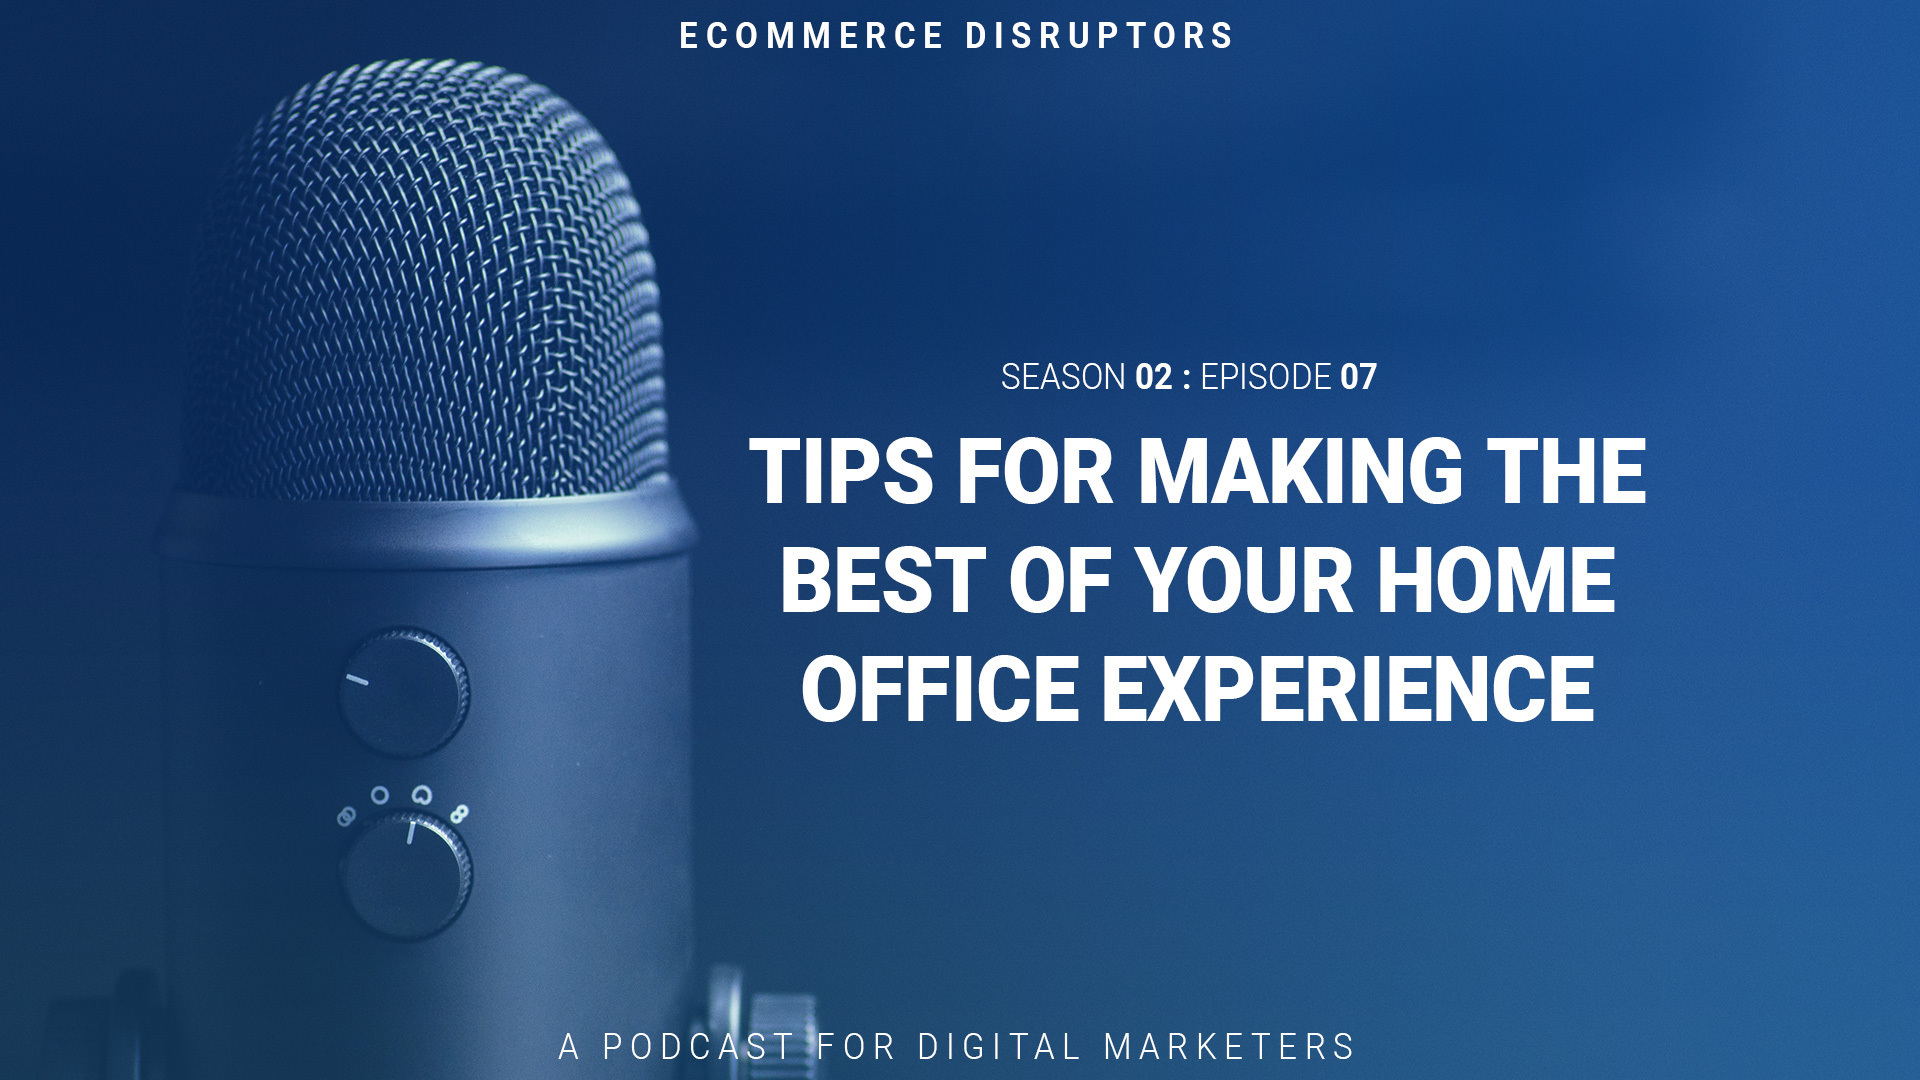 Tips For Making The Best Of Your Home Office Experience